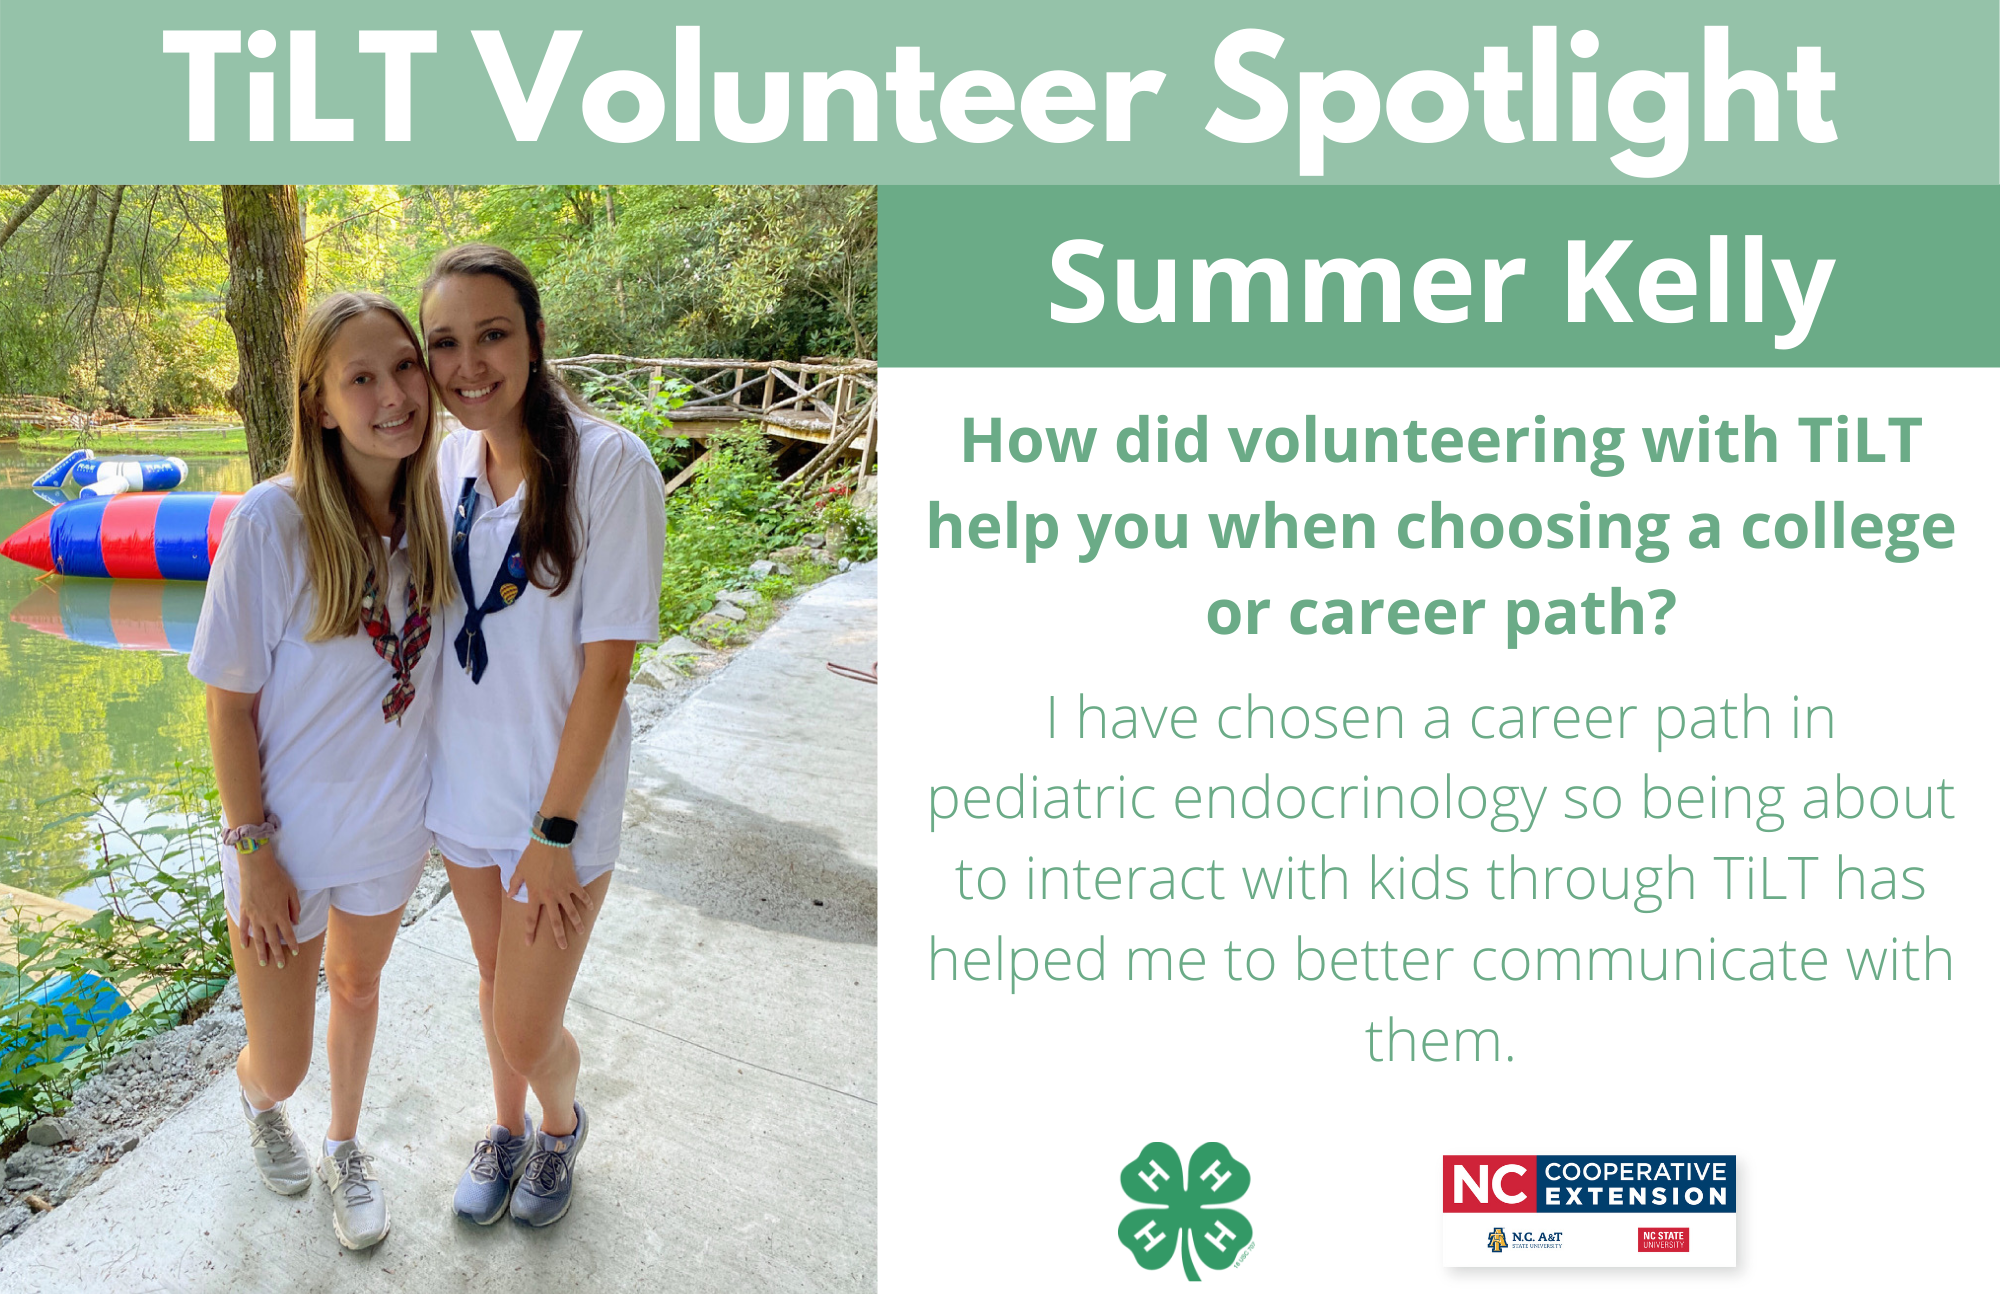 Headshot of Summer Kelly with following text to the right of image. TiLT Volunteer Spotlight. Summer Kelly. How did volunteering with TiLT help you when choosing a college or career path? I have chosen a career path in pediatric endocrinology so being about to interact with kids through TiLT has helped me to better communicate with them.